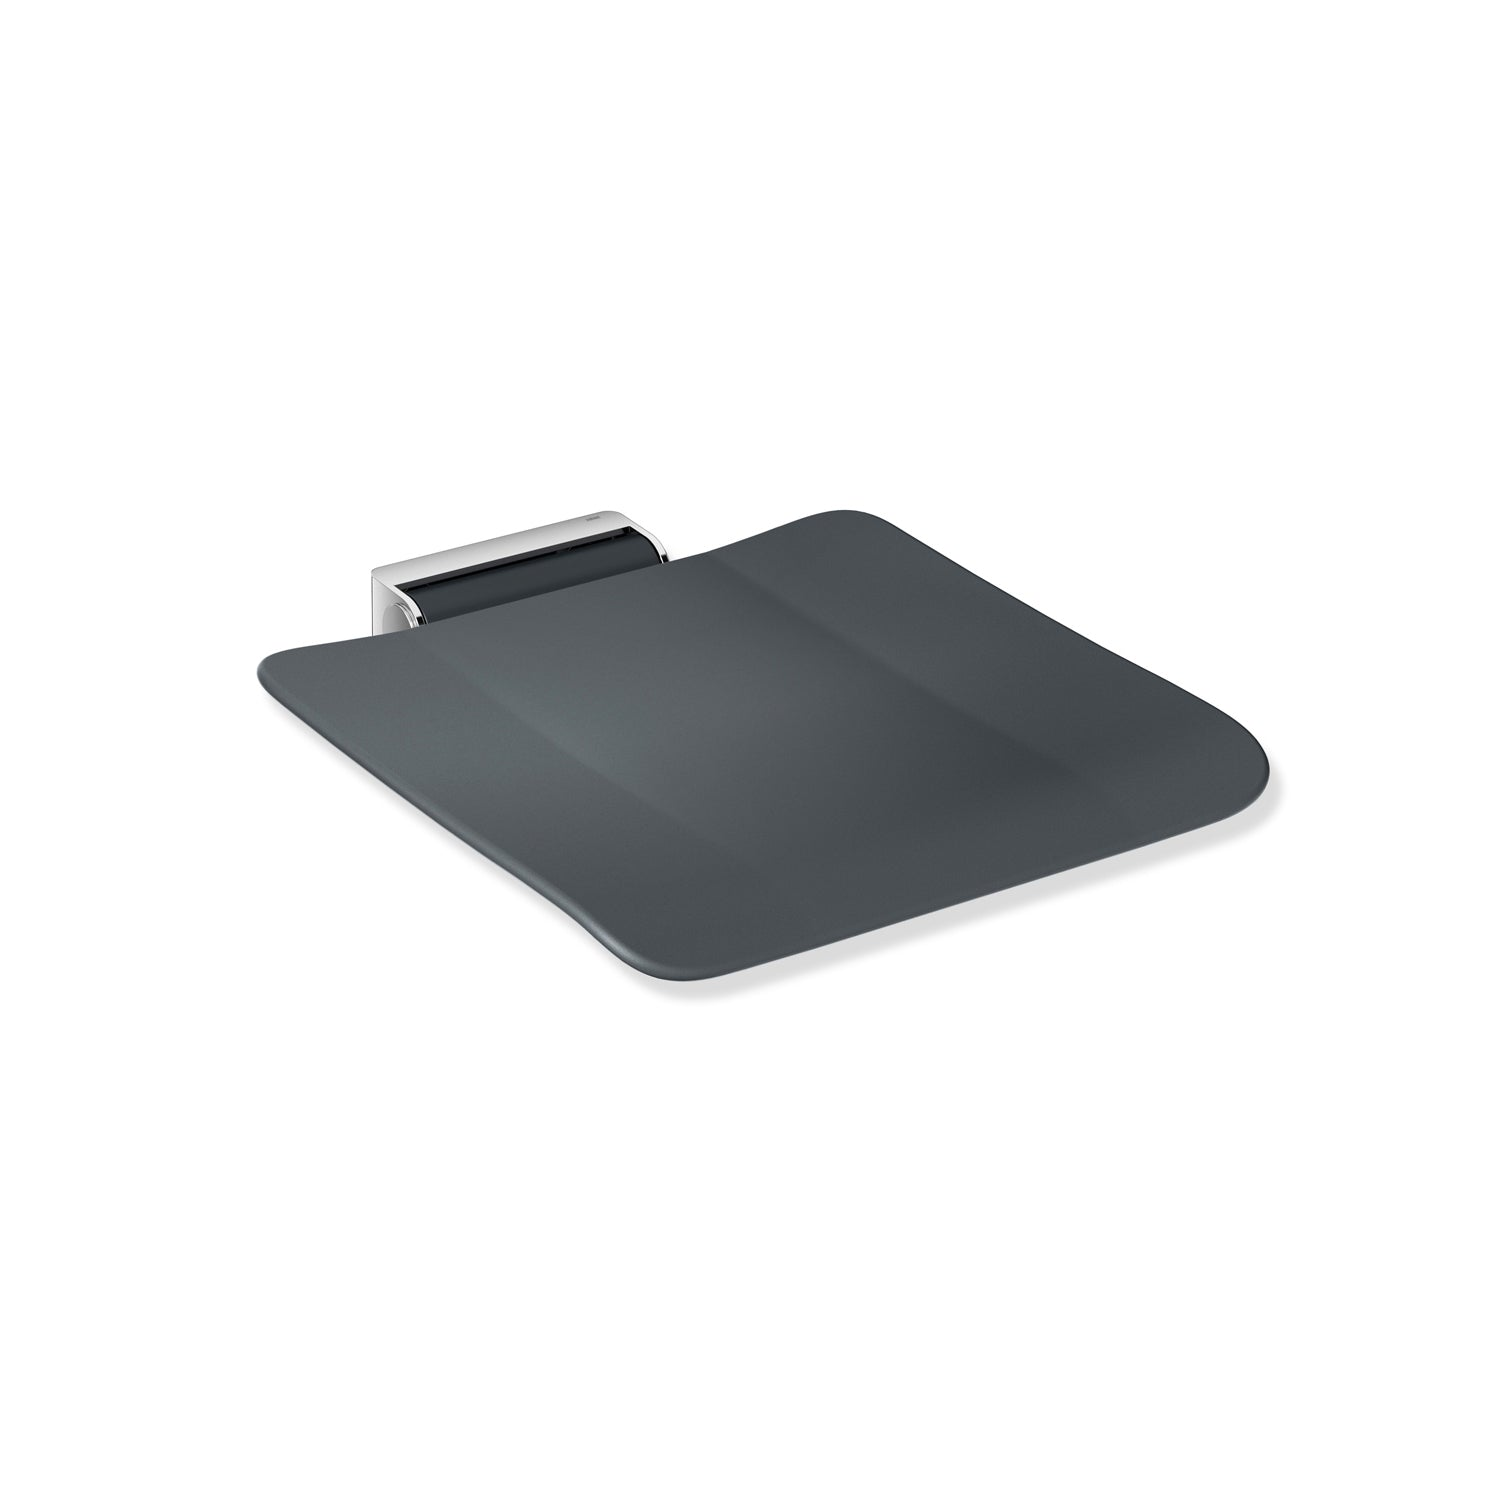 Freestyle Removable Shower Seat Set with an anthracite grey Seat Set and chrome bracket on a white background